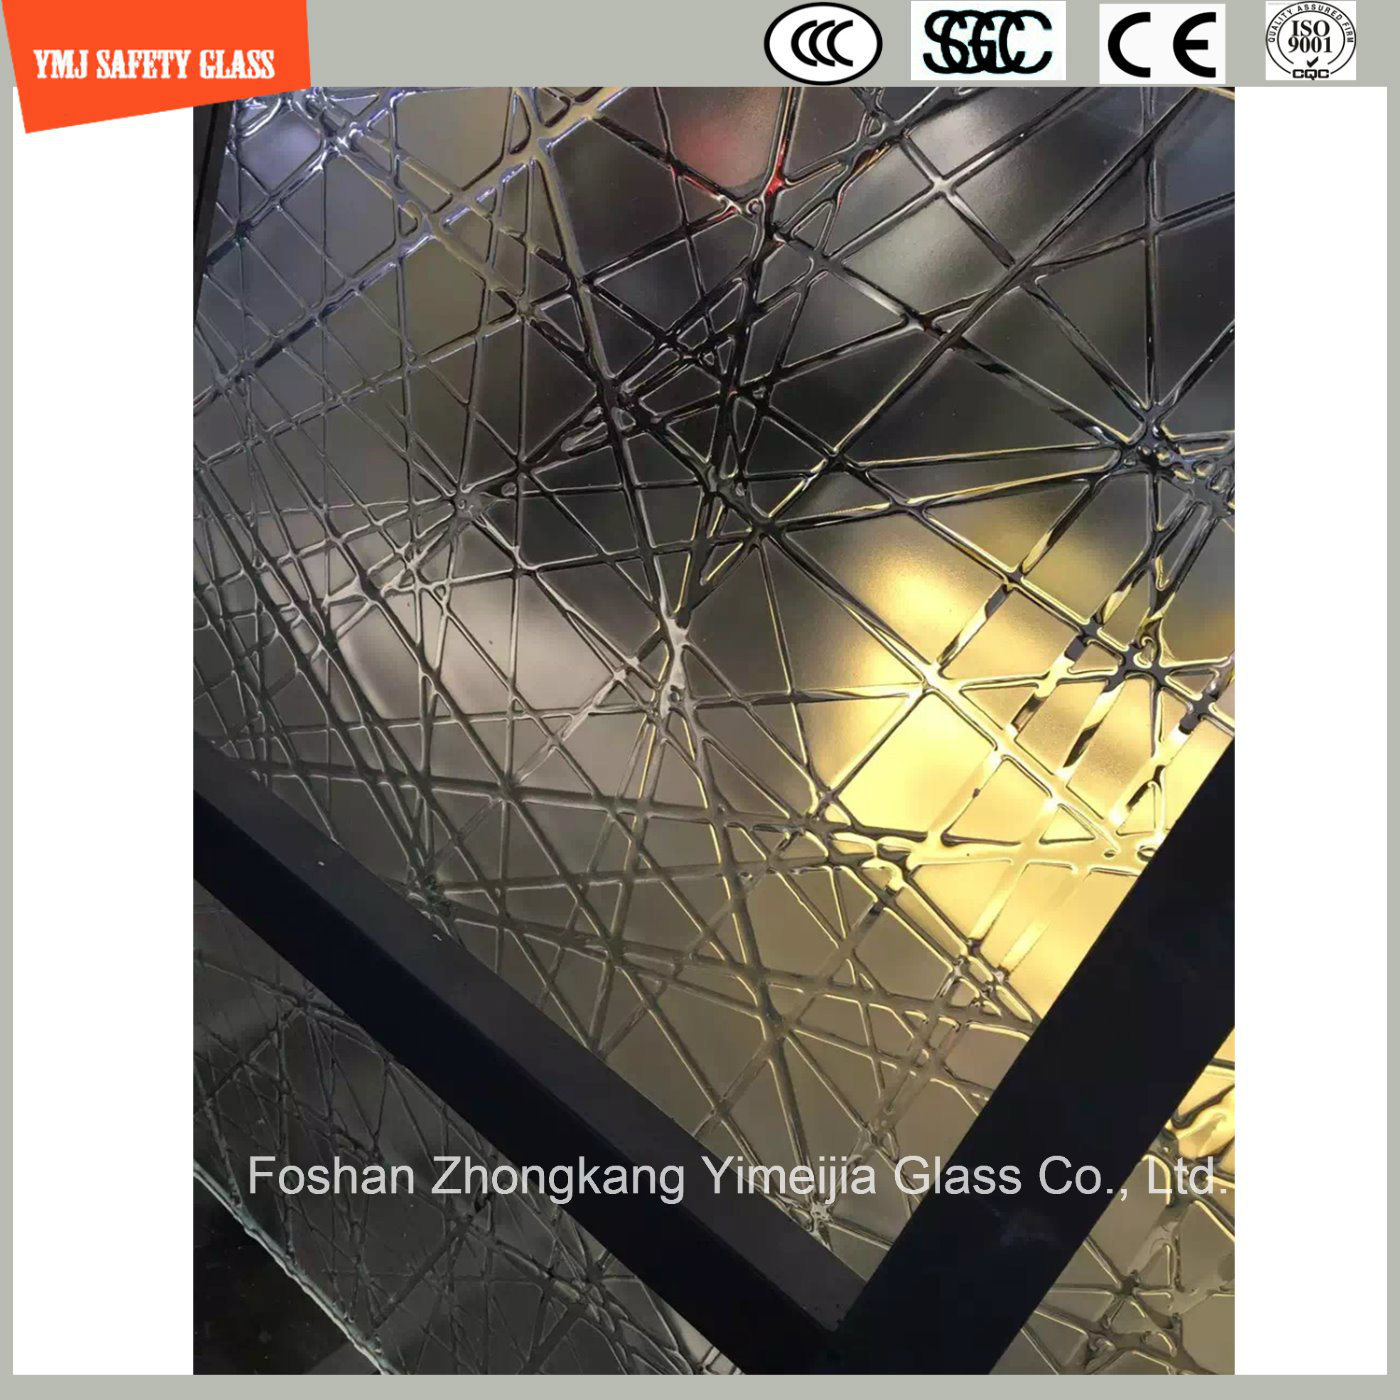 4-19mm Safety Construction Glass, Hot Melting Patterned Glass for Hotel & Home Door/Window/Shower/Partition/Fence with SGCC/Ce&CCC&ISO Certificate